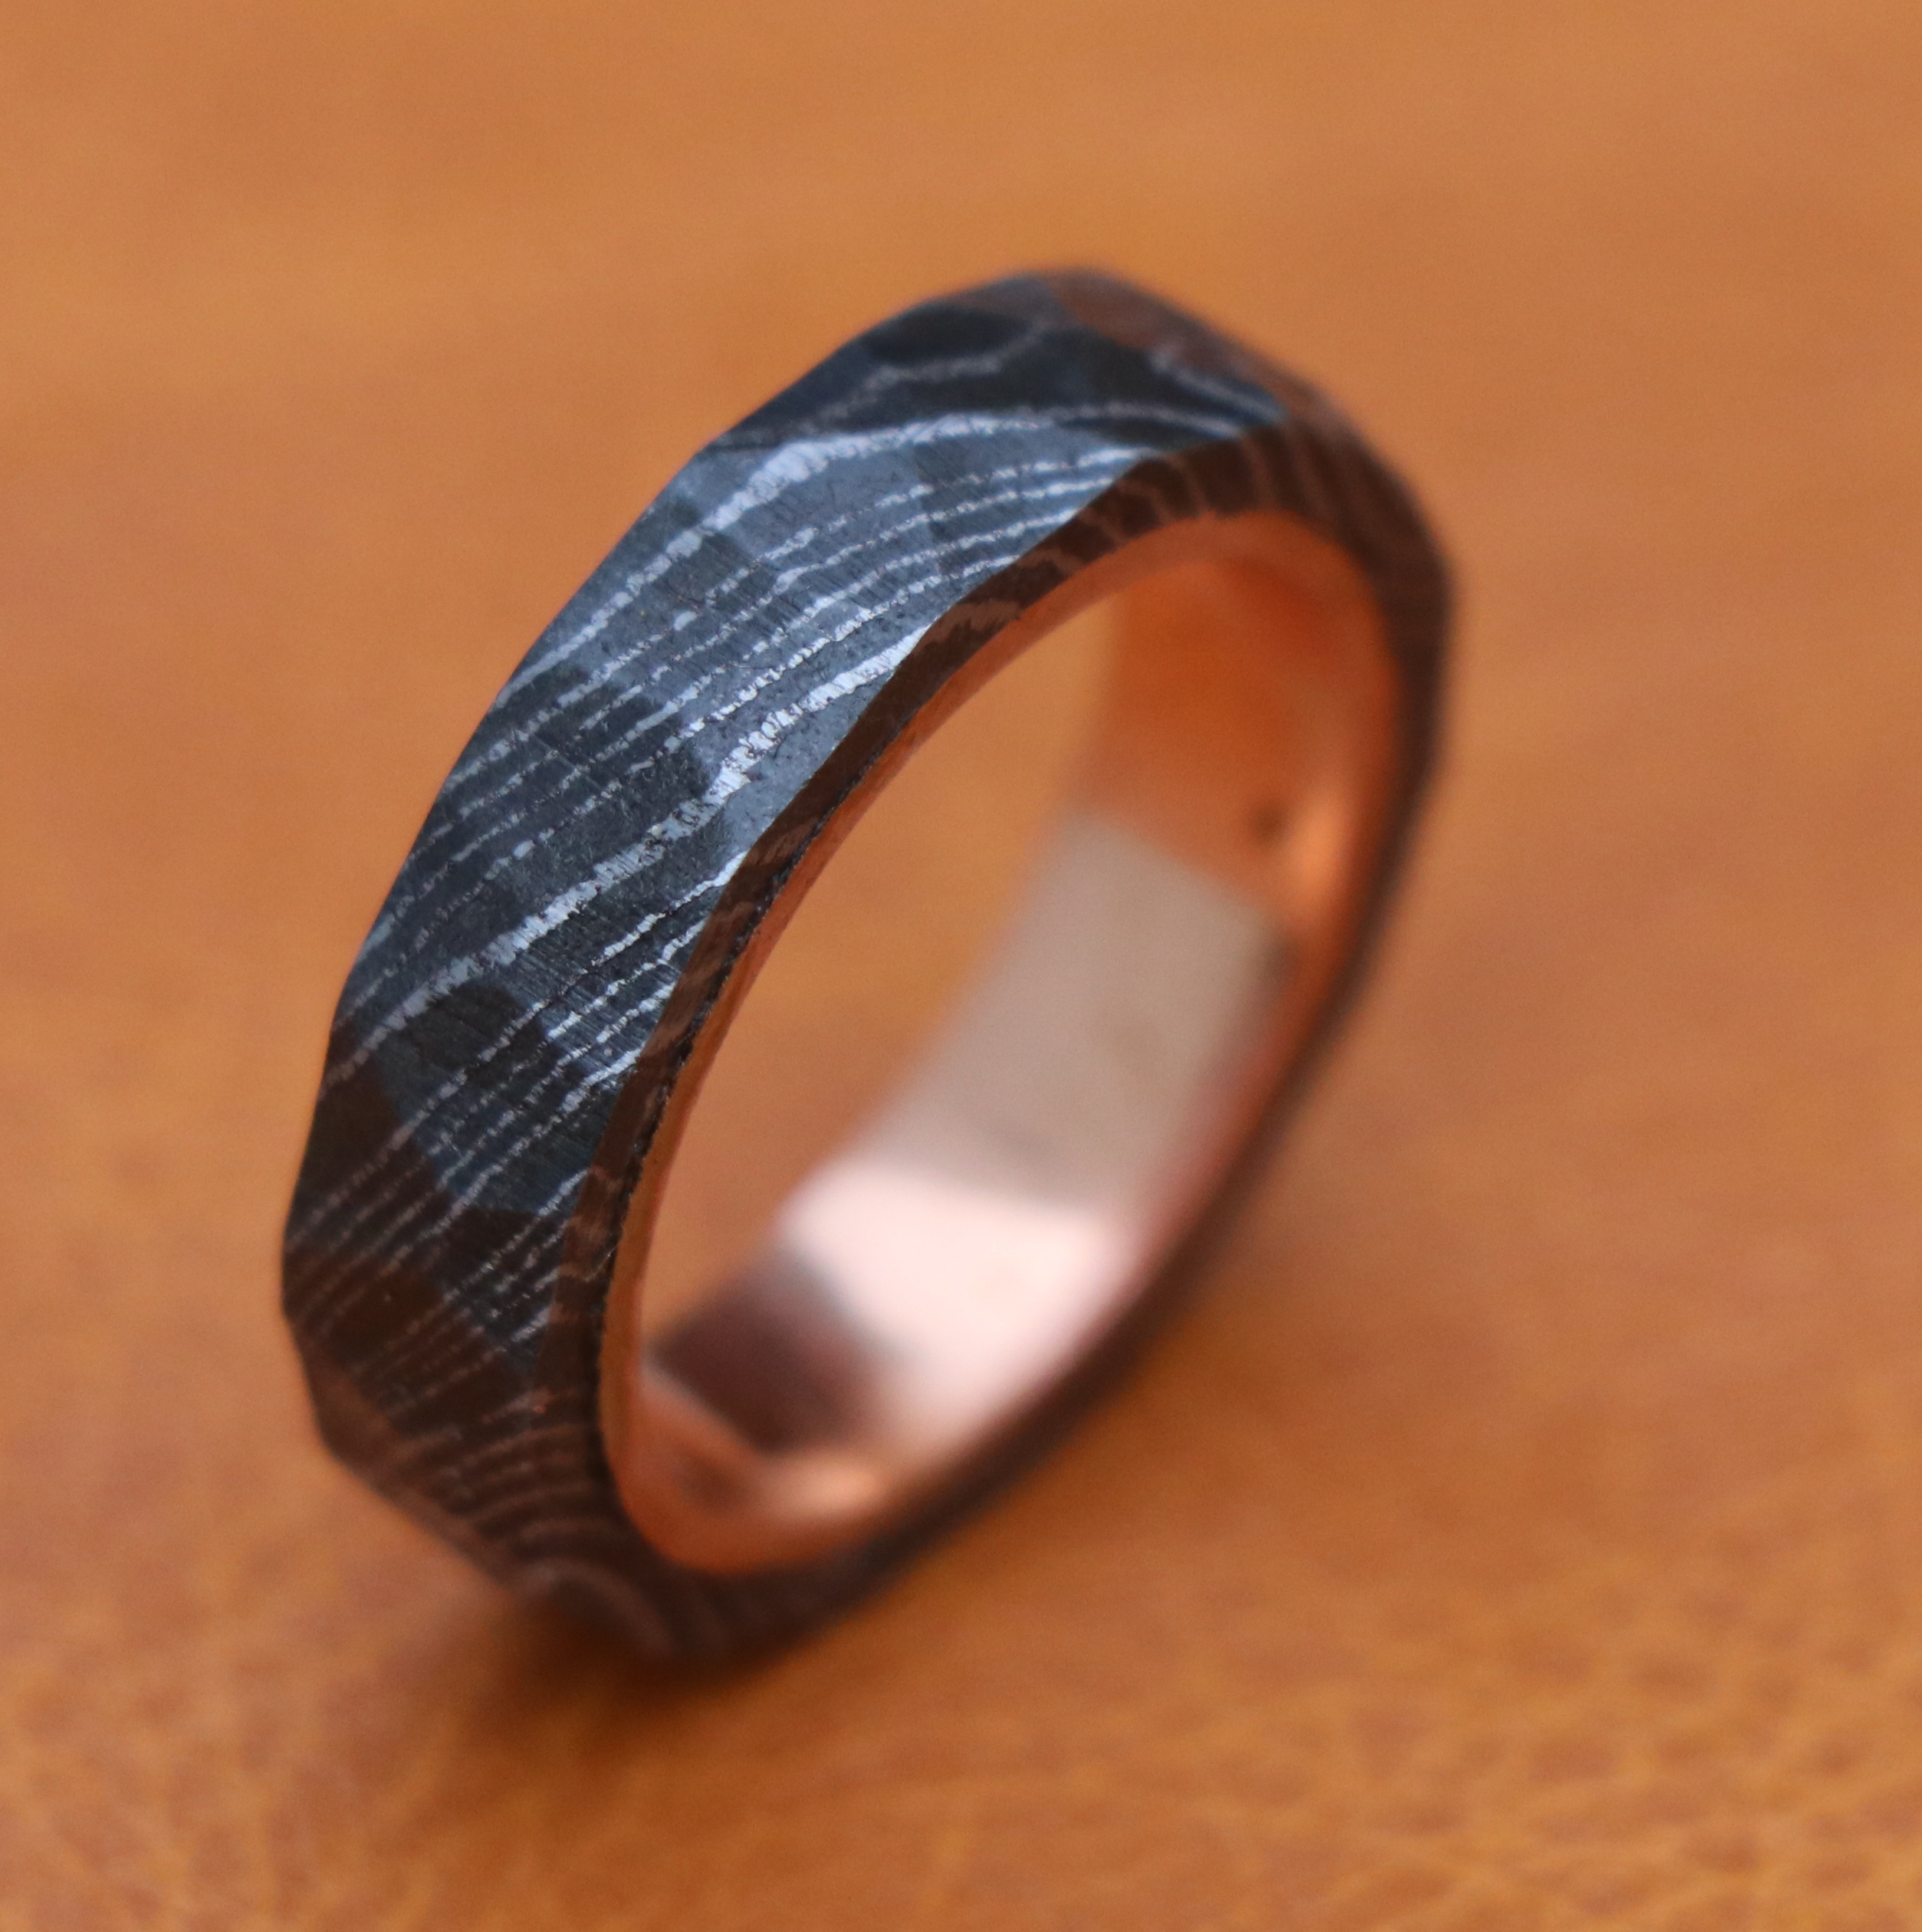 Damascus steel wedding band copper inlay